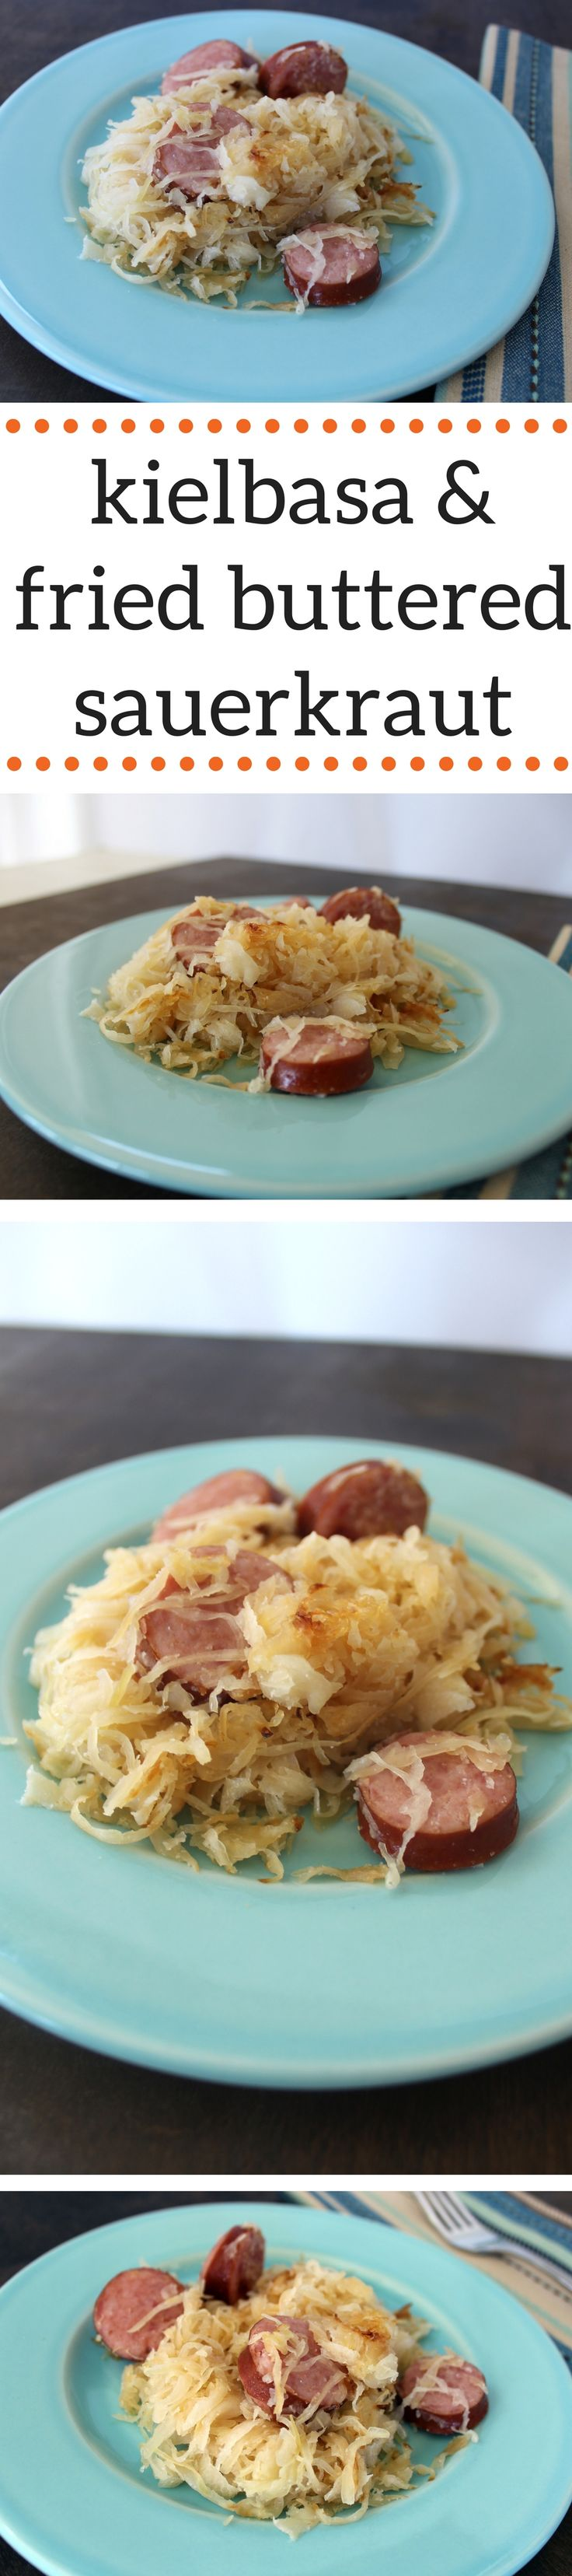 Add some cornbread and you have one easy weeknight meal. Kielbasa and sauerkraut are great together, but adding the butter makes this recipe extra special.